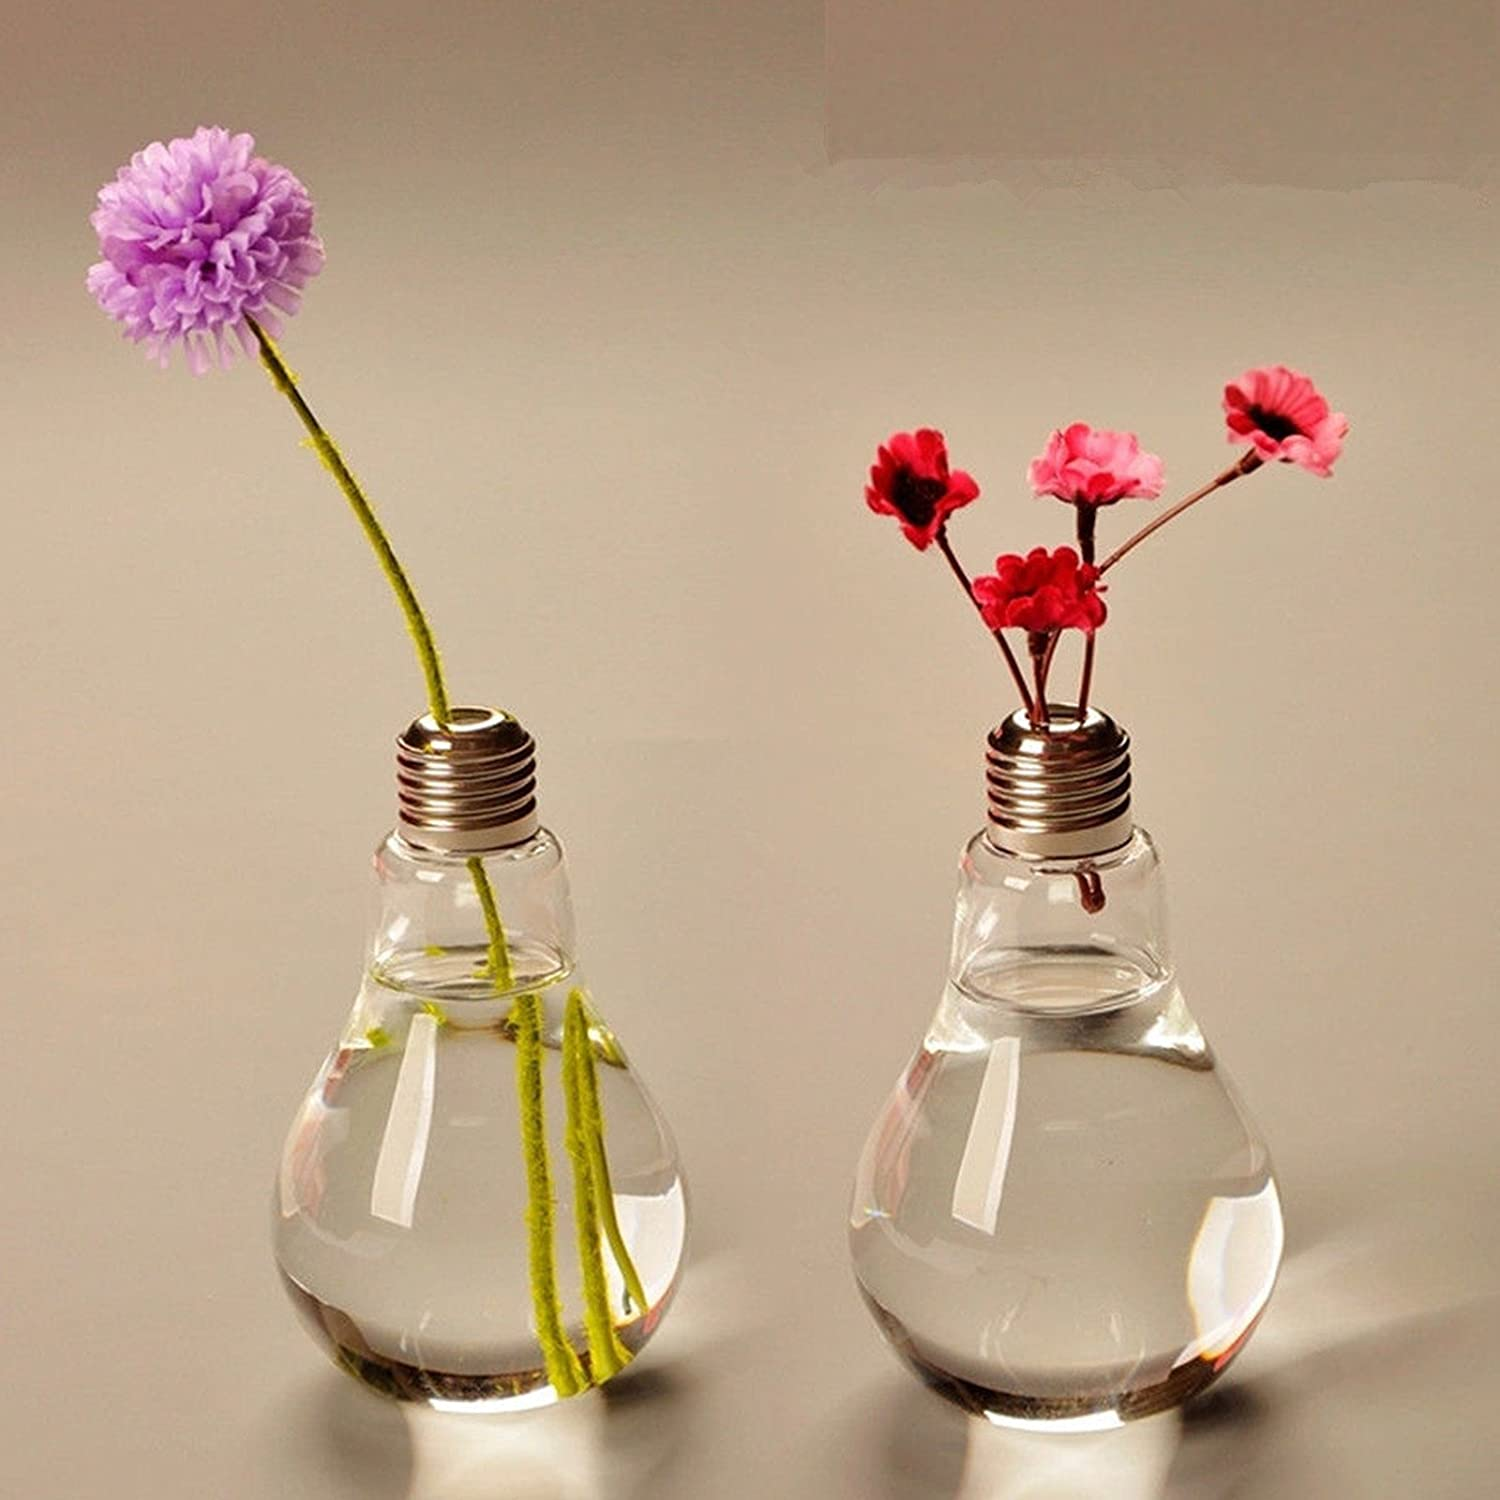 Light Bulb Shaped Glass Vase f...